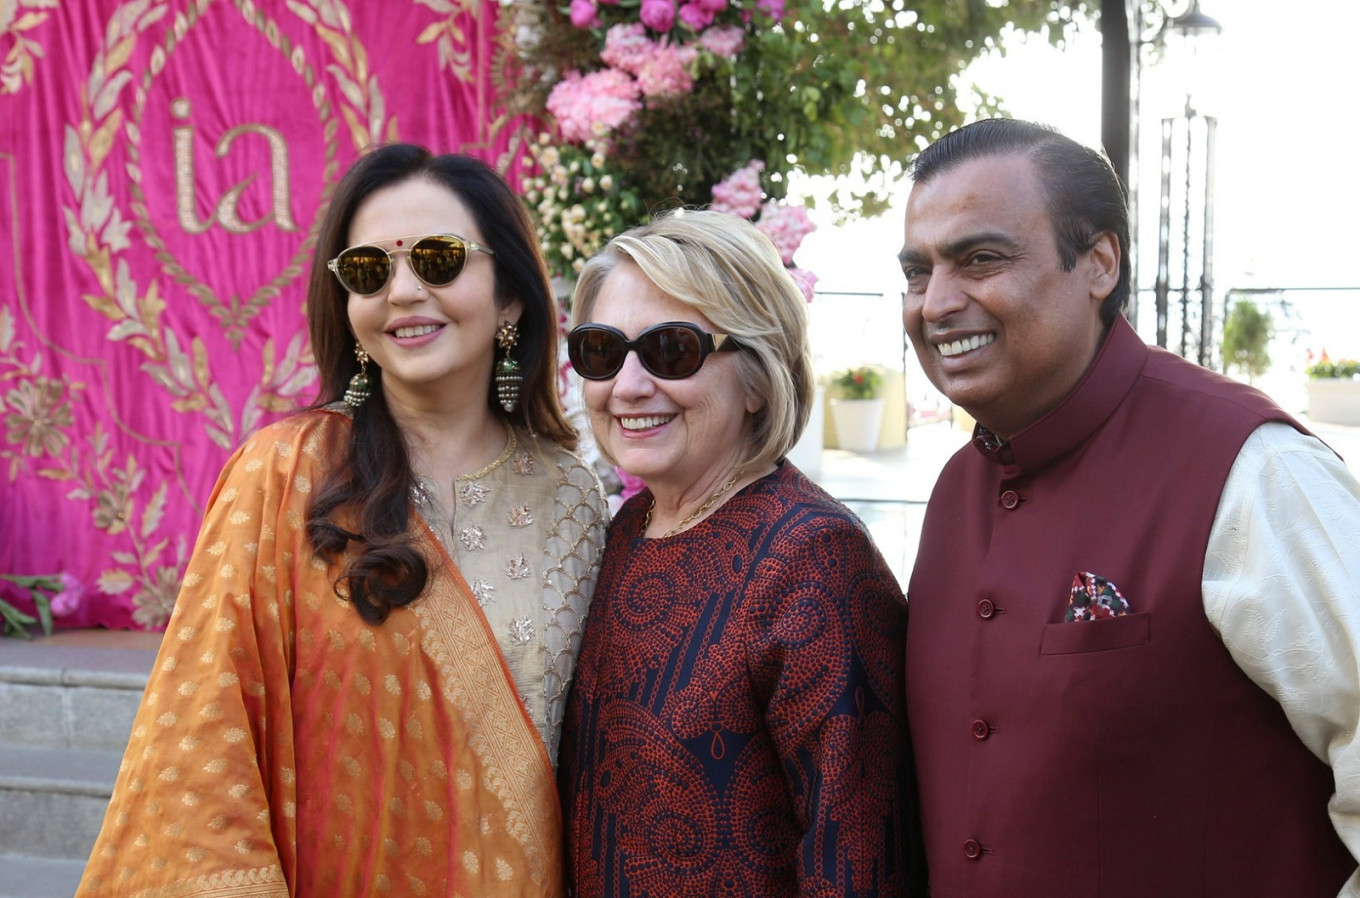 VIPs arrive at pre-wedding bash for daughter of India's